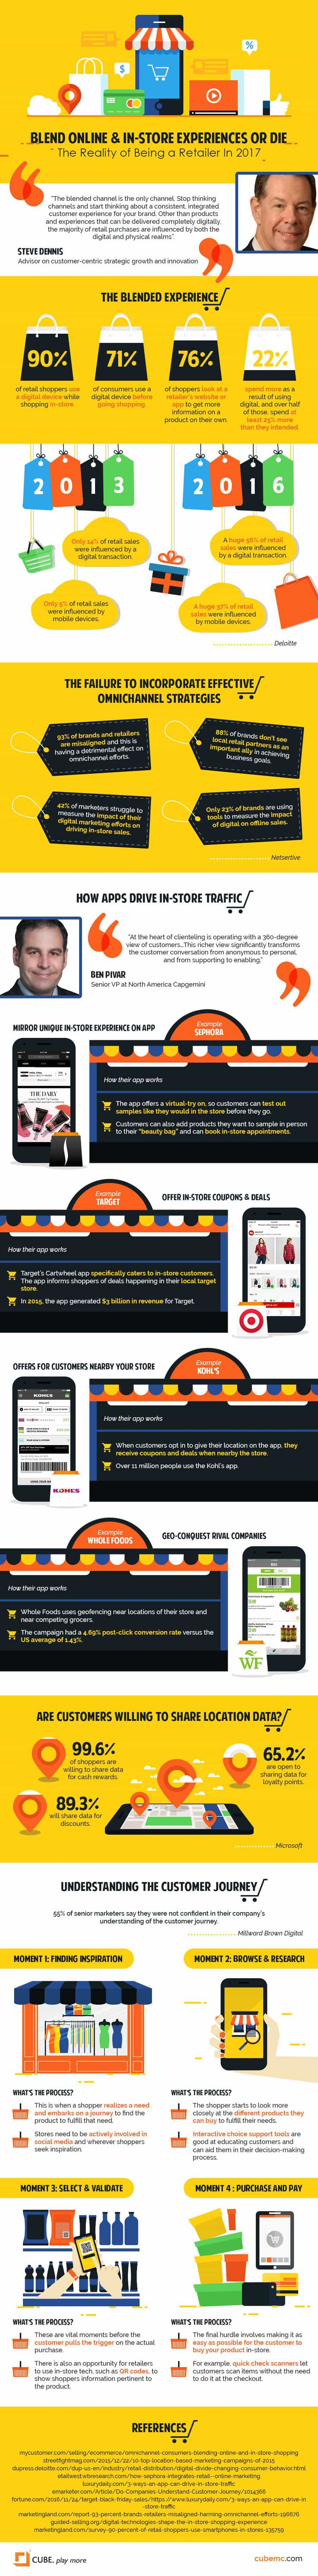 Why Retailers Must Create a Blended Online and In-Store Shopping Journey #Infographic #Ecommerce